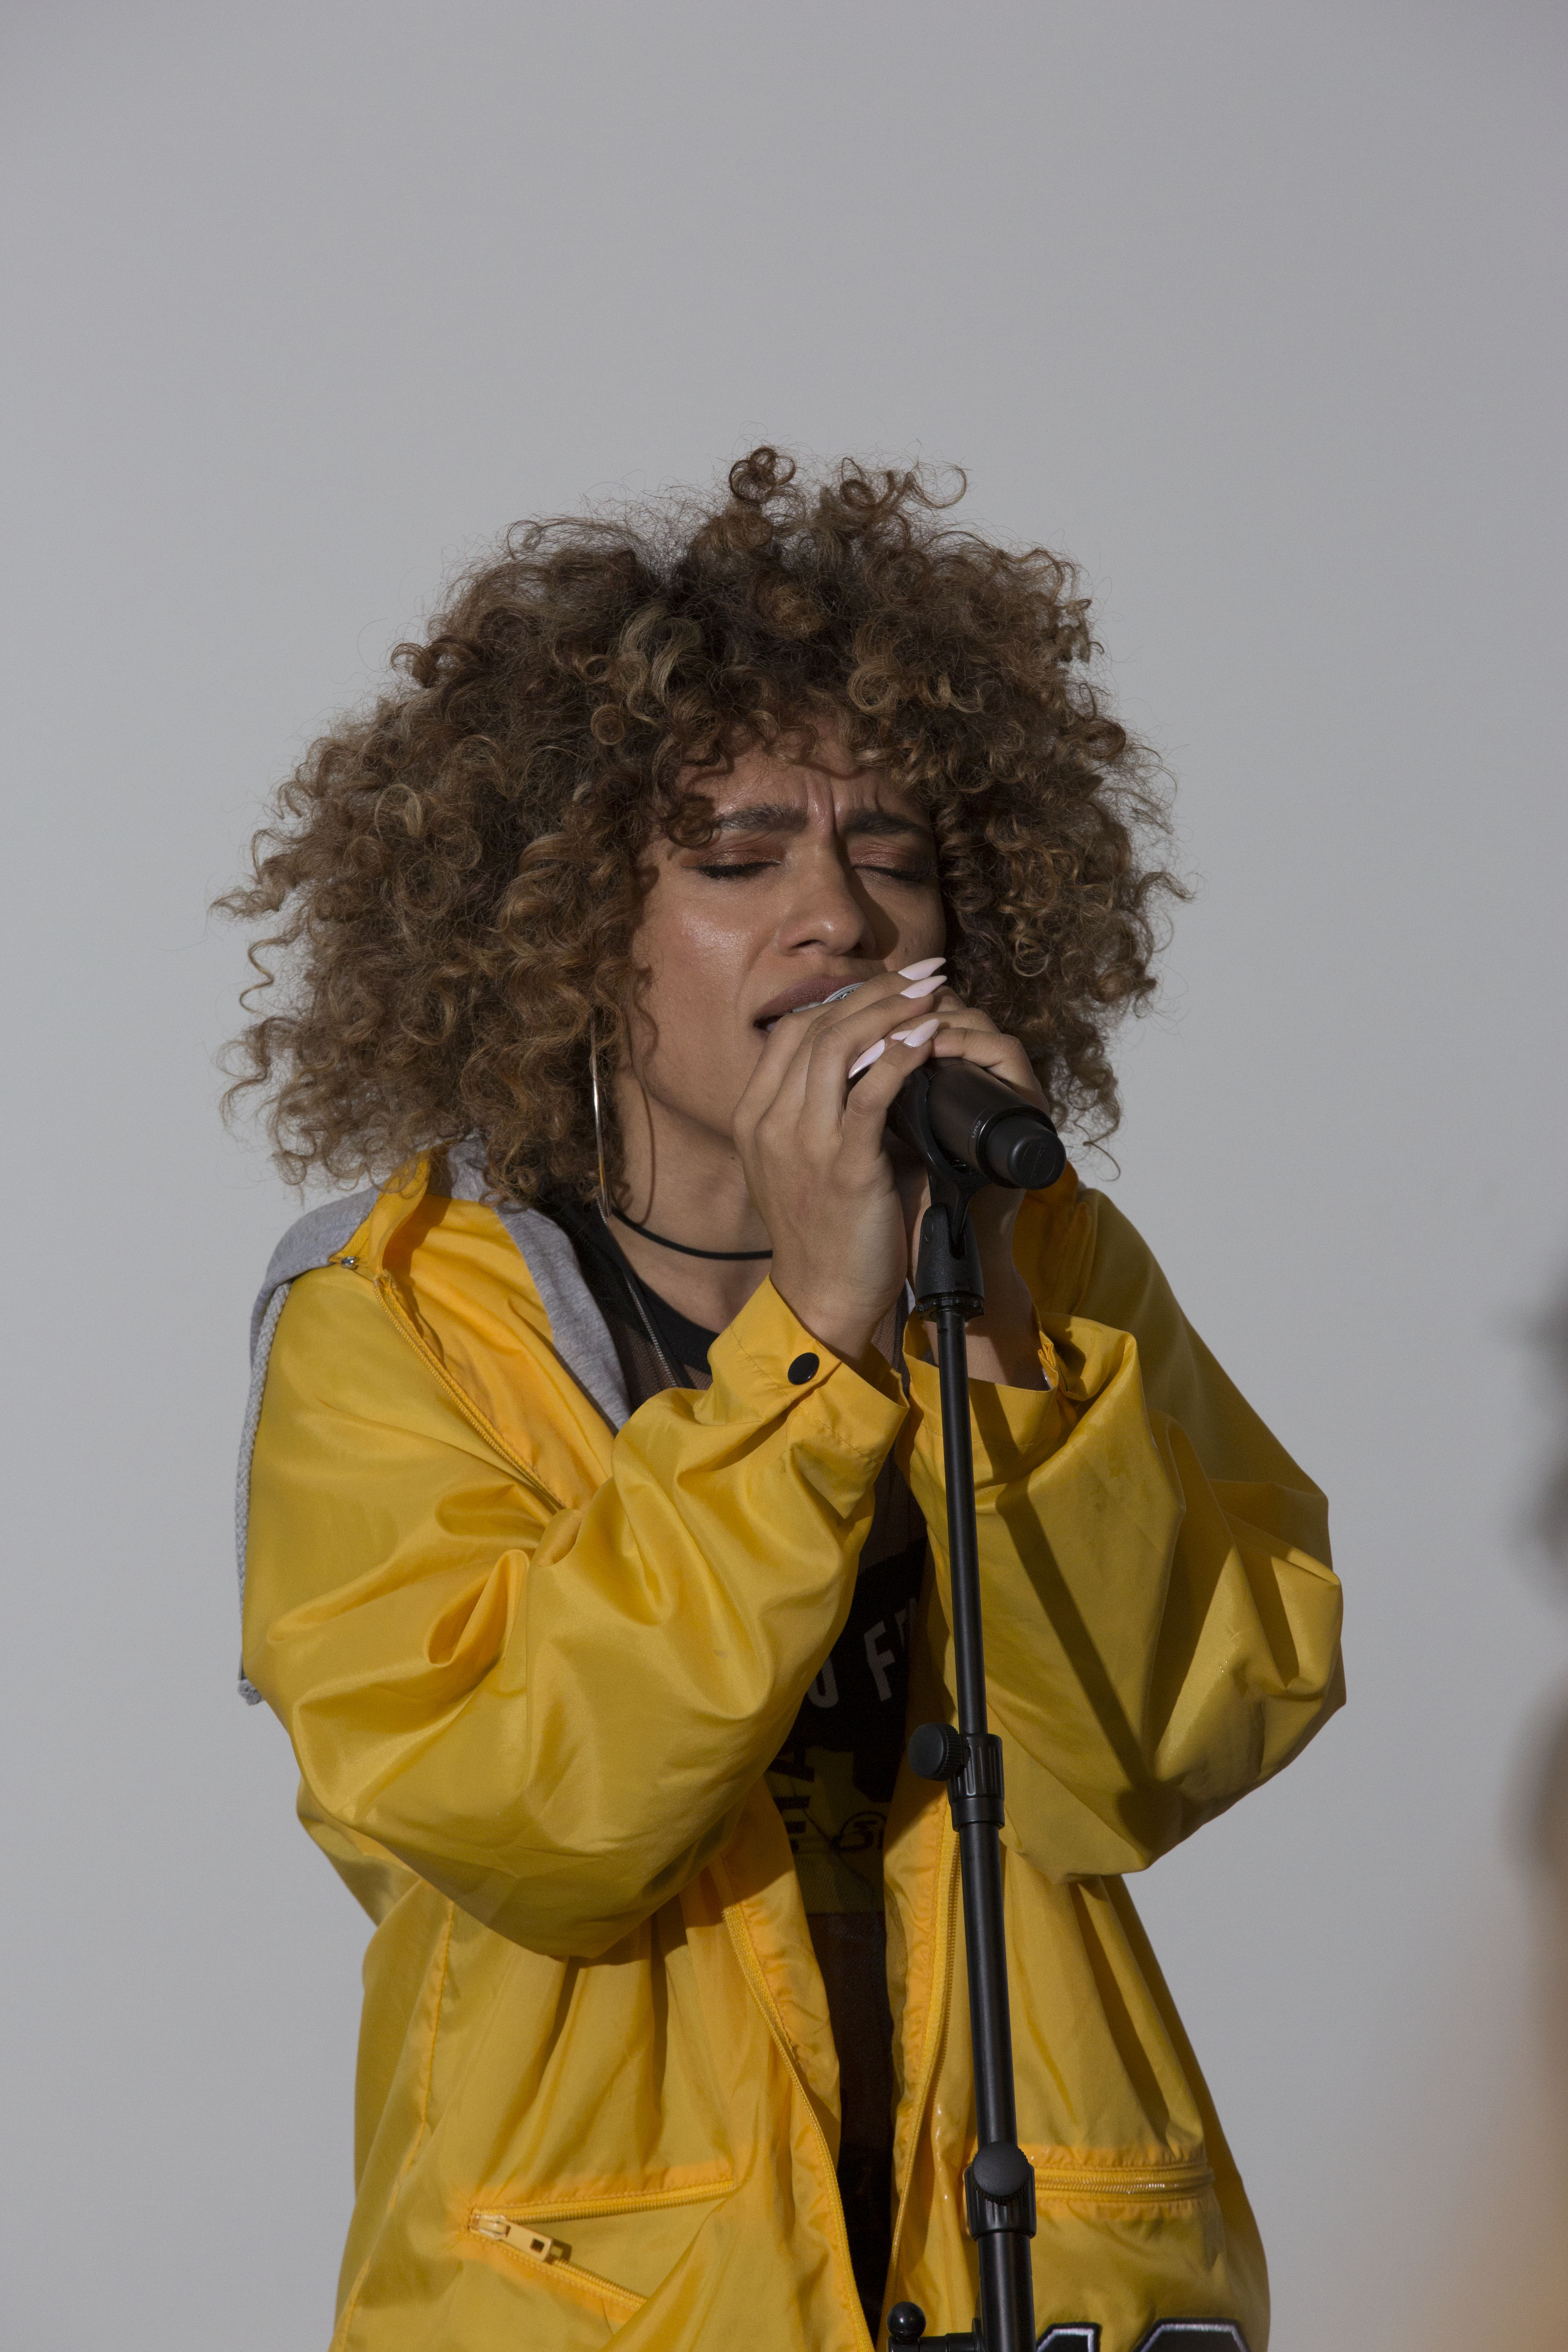 Australian singer/songwriter Starley takes the mic at February's Havas Sessions